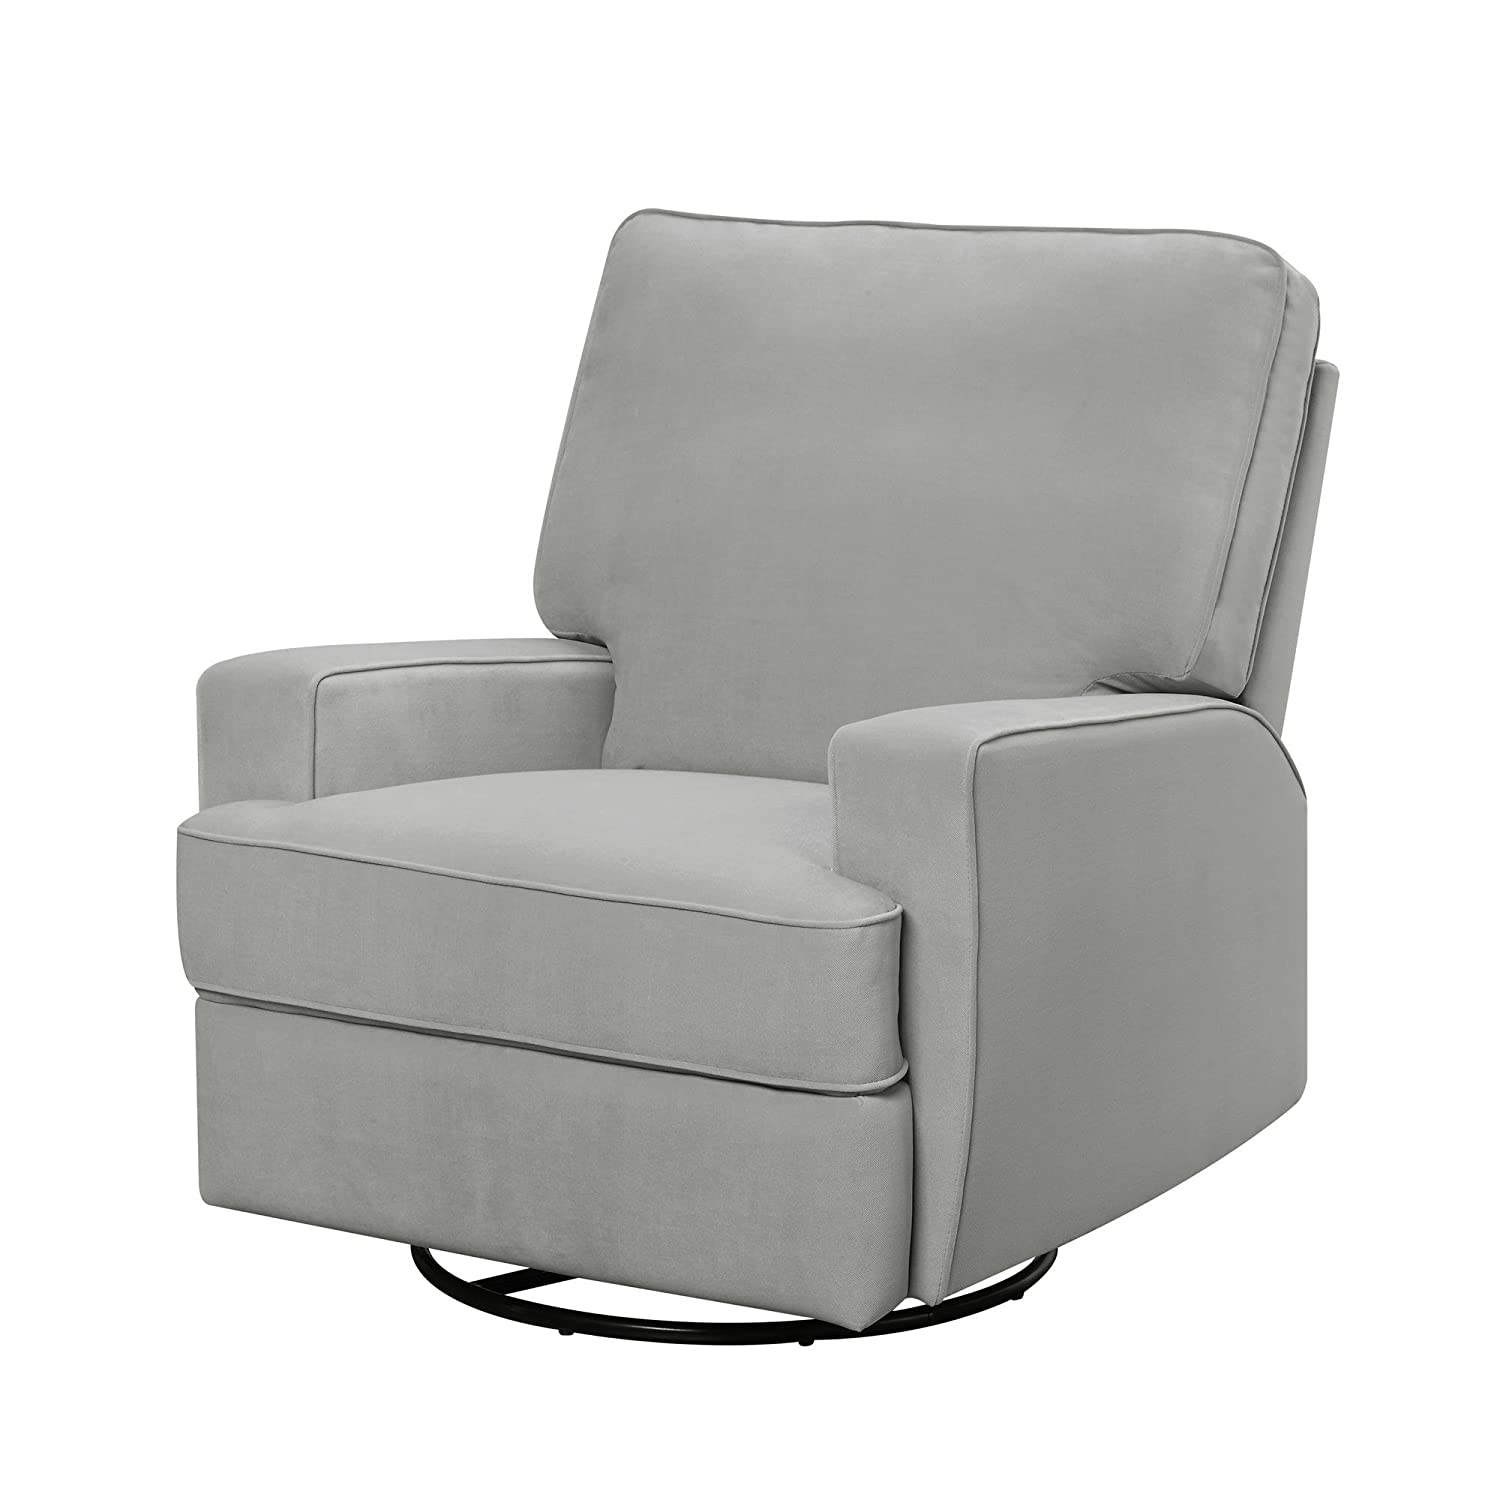 living designer capture com rocker the chair perfect tuppercraft lane swivel small recliners recliner ottoman delightful room marvelous chairs with of